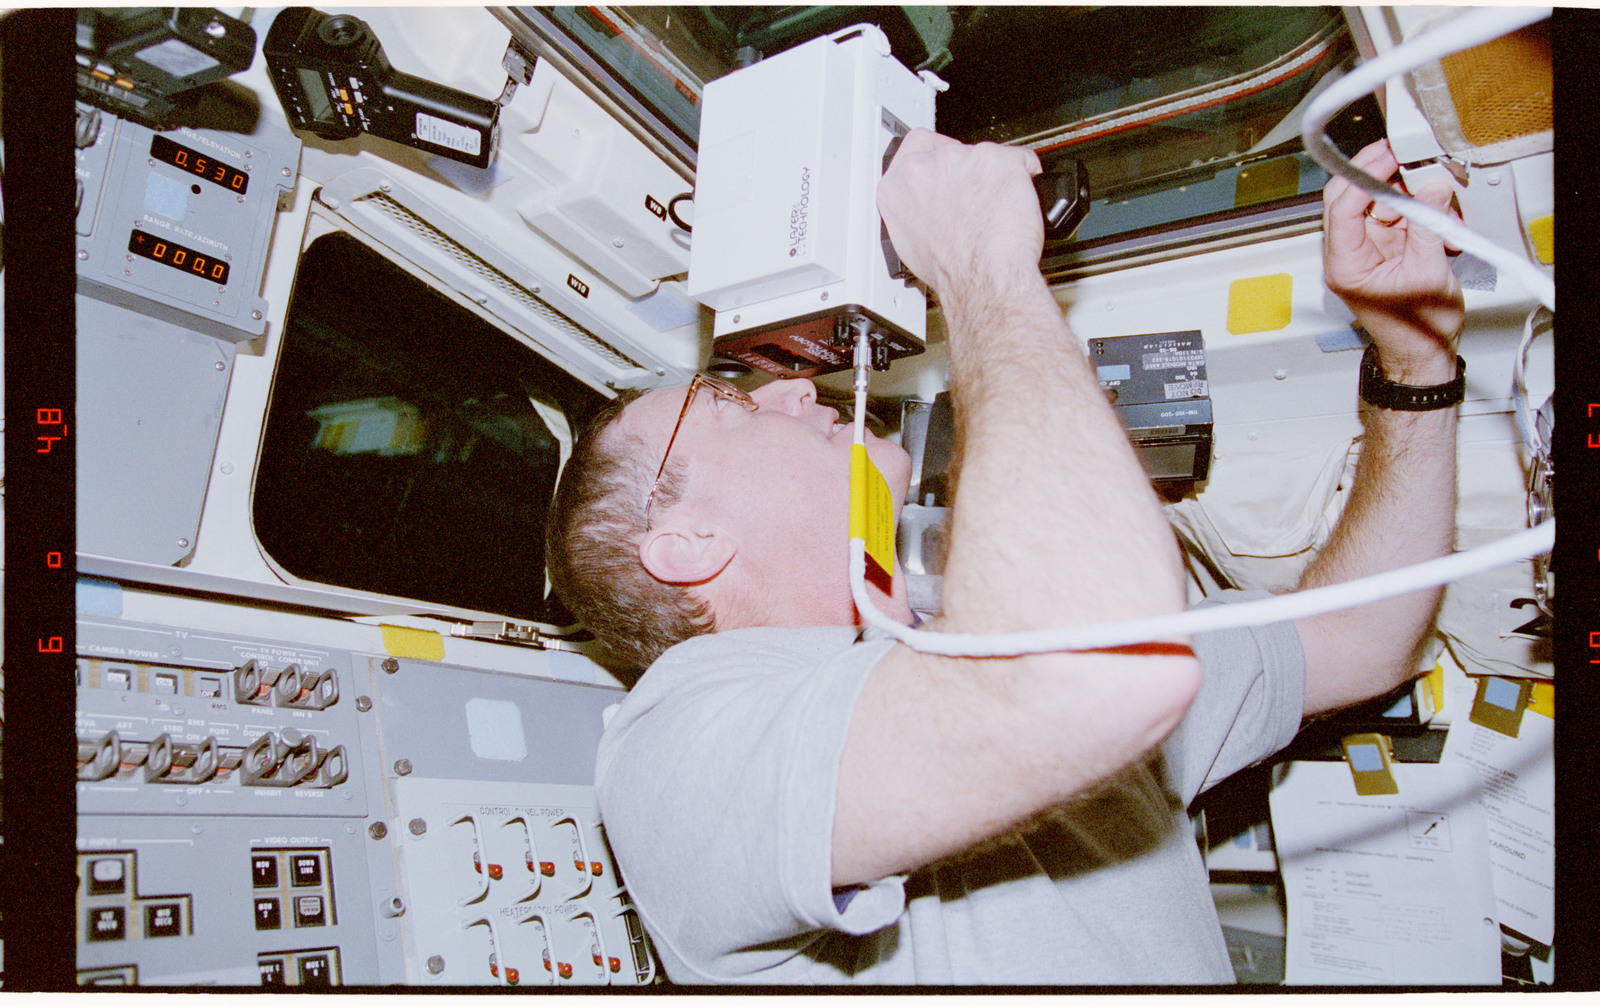 STS081-311-031 - STS-081 - STS-81 crew activities during undocking with Mir space station